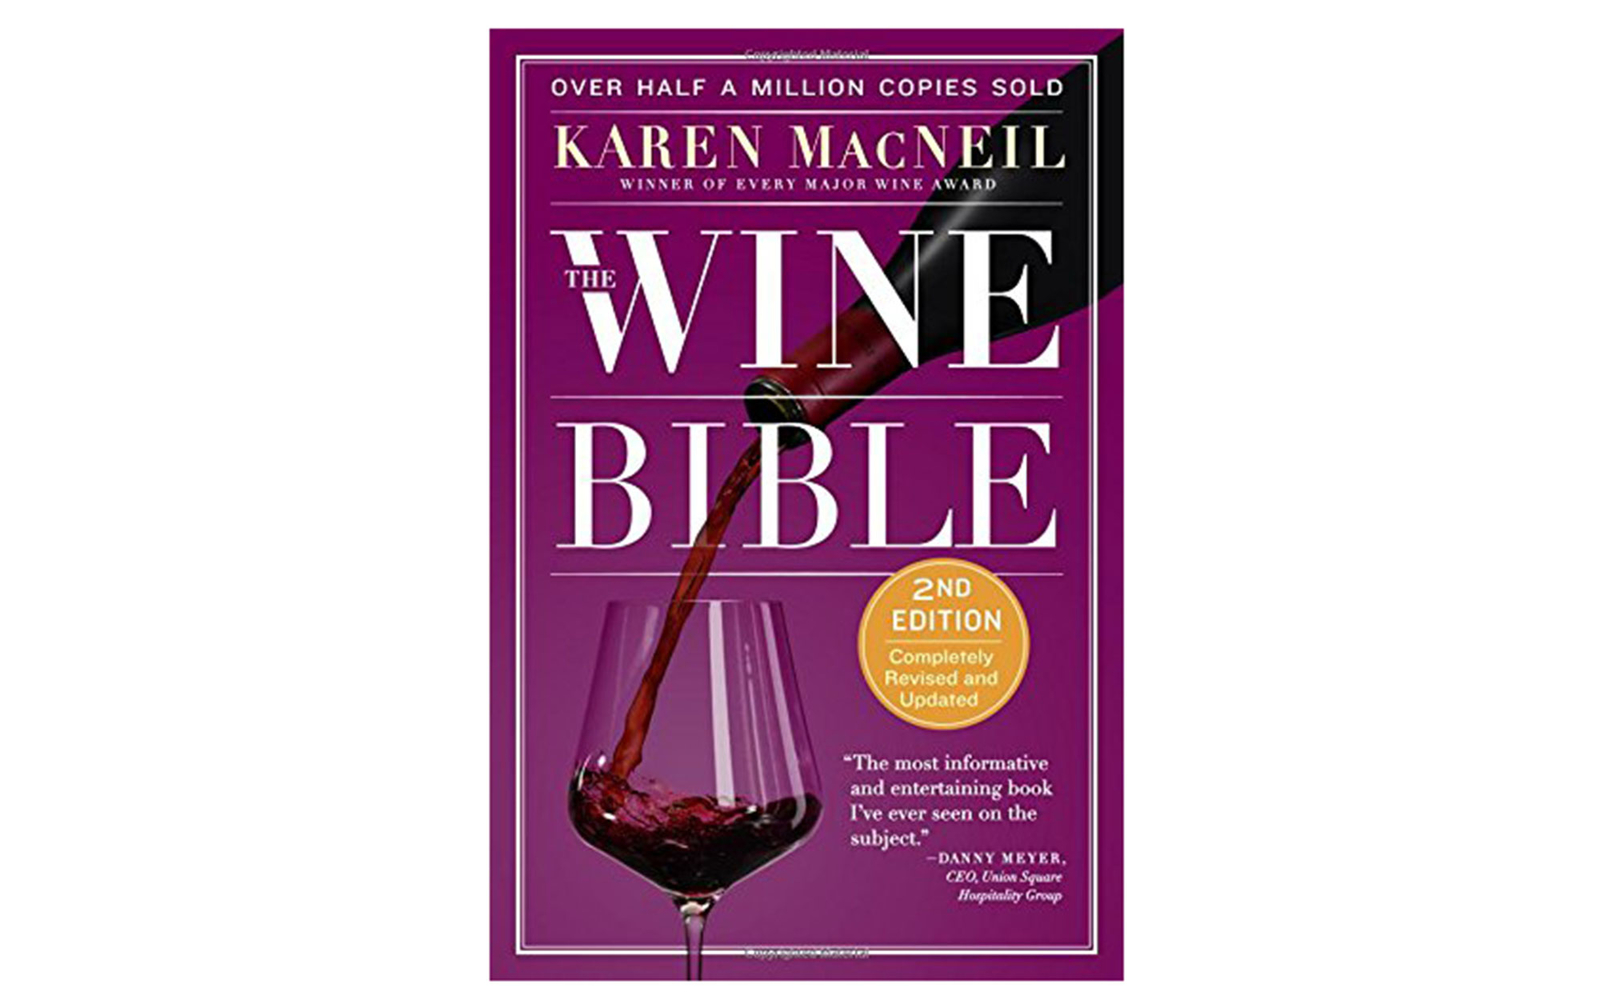 A Perfect Gift For the Wine Lover in Your Life